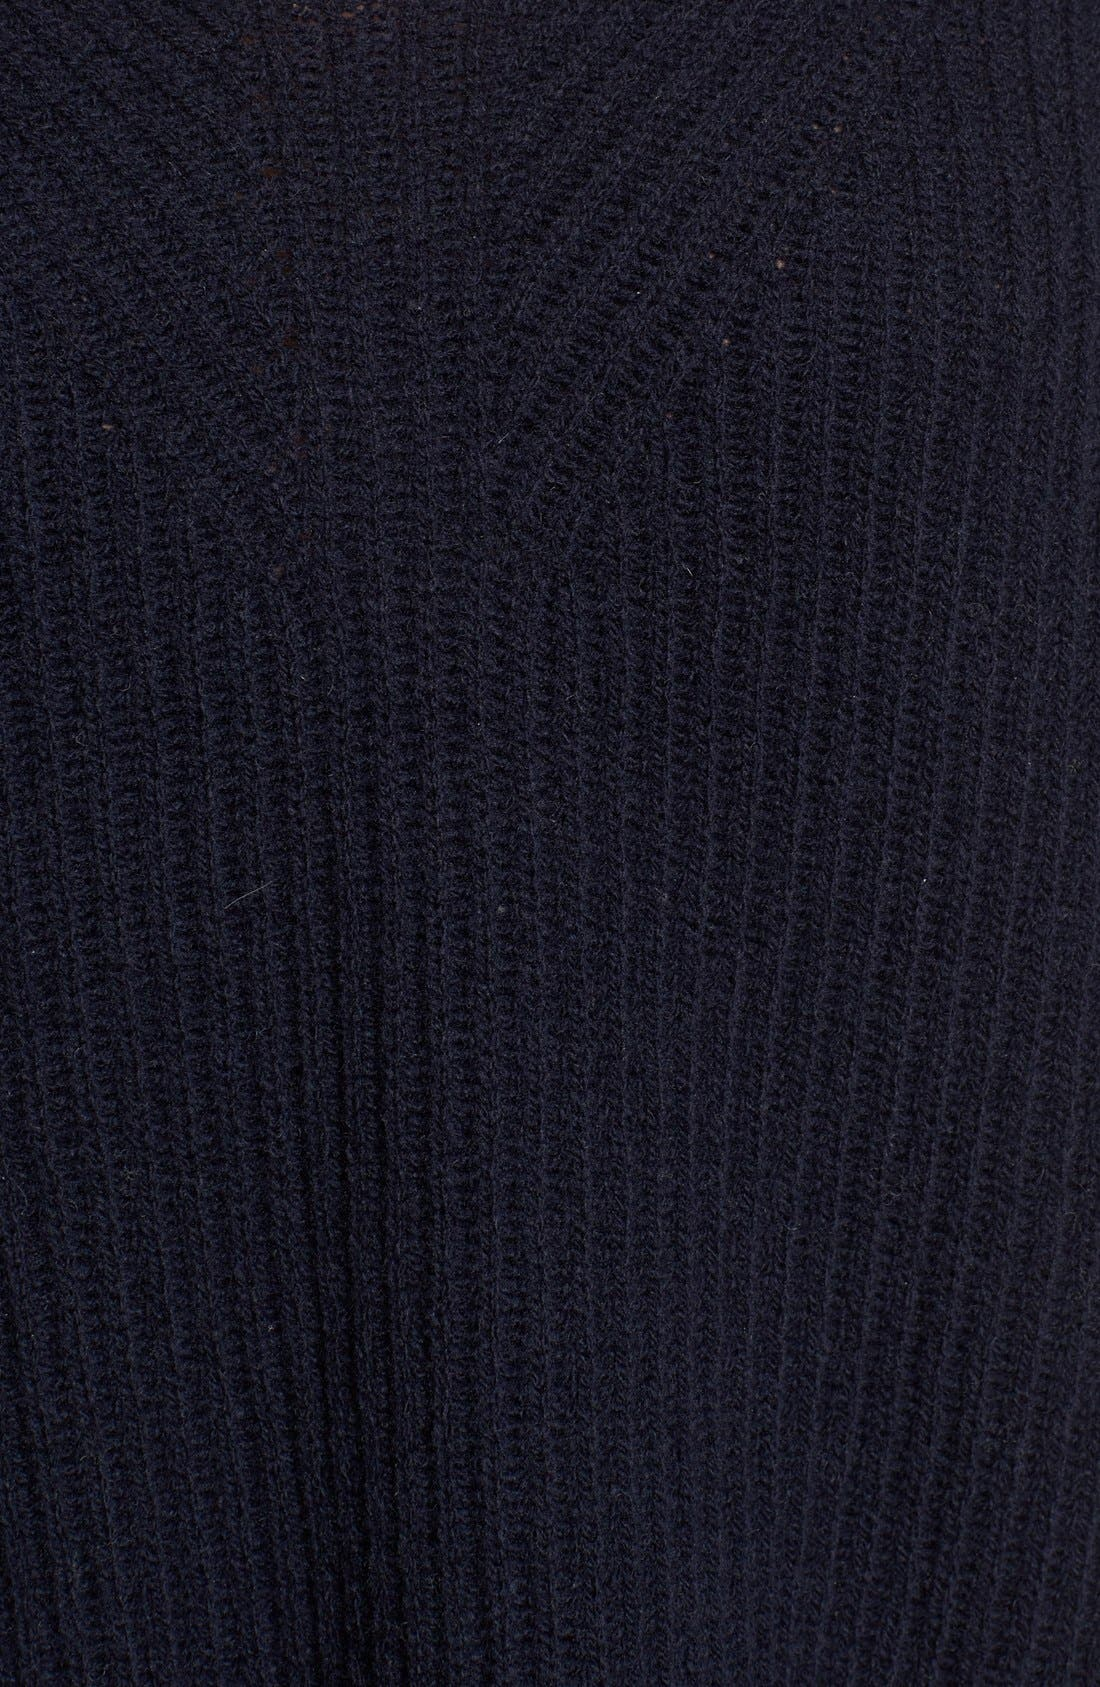 Woodside Pullover Sweater,                             Alternate thumbnail 35, color,